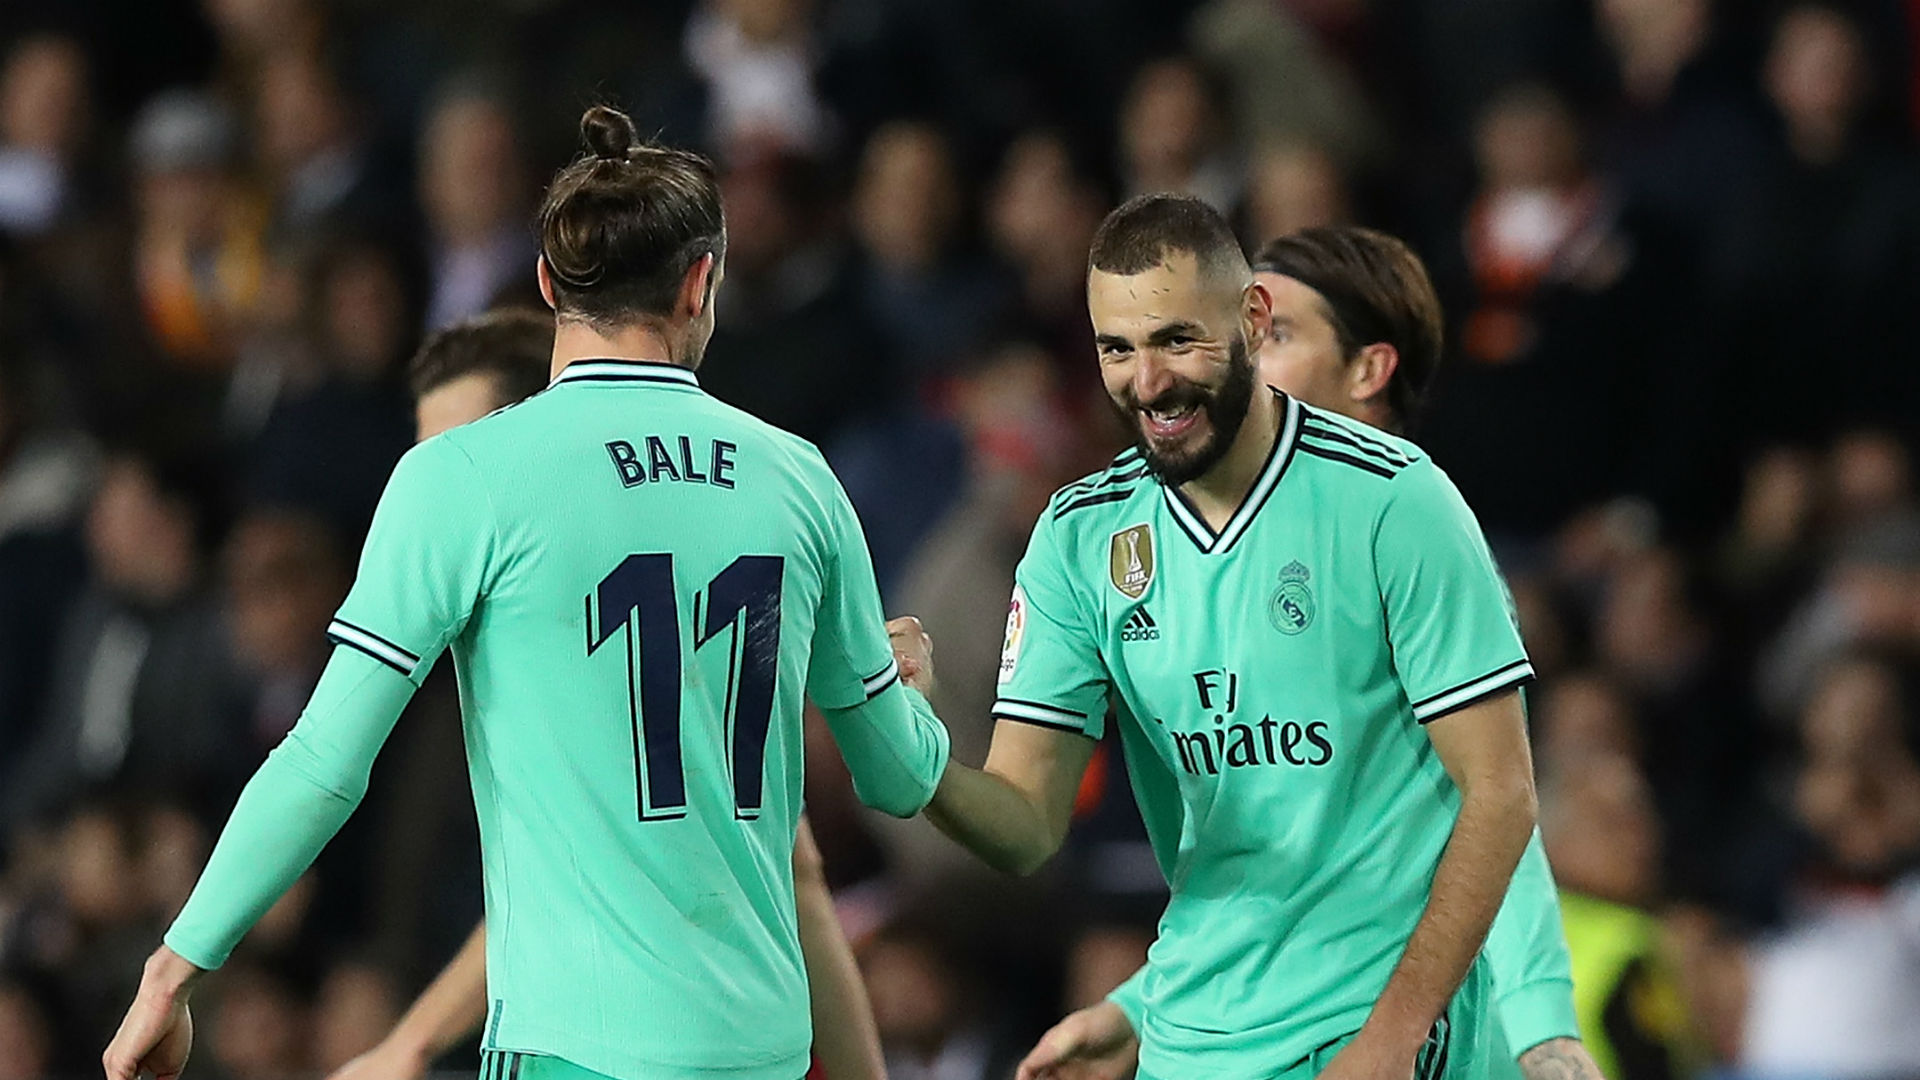 Real Madrid duo Benzema and Bale set to miss Supercopa de Espana